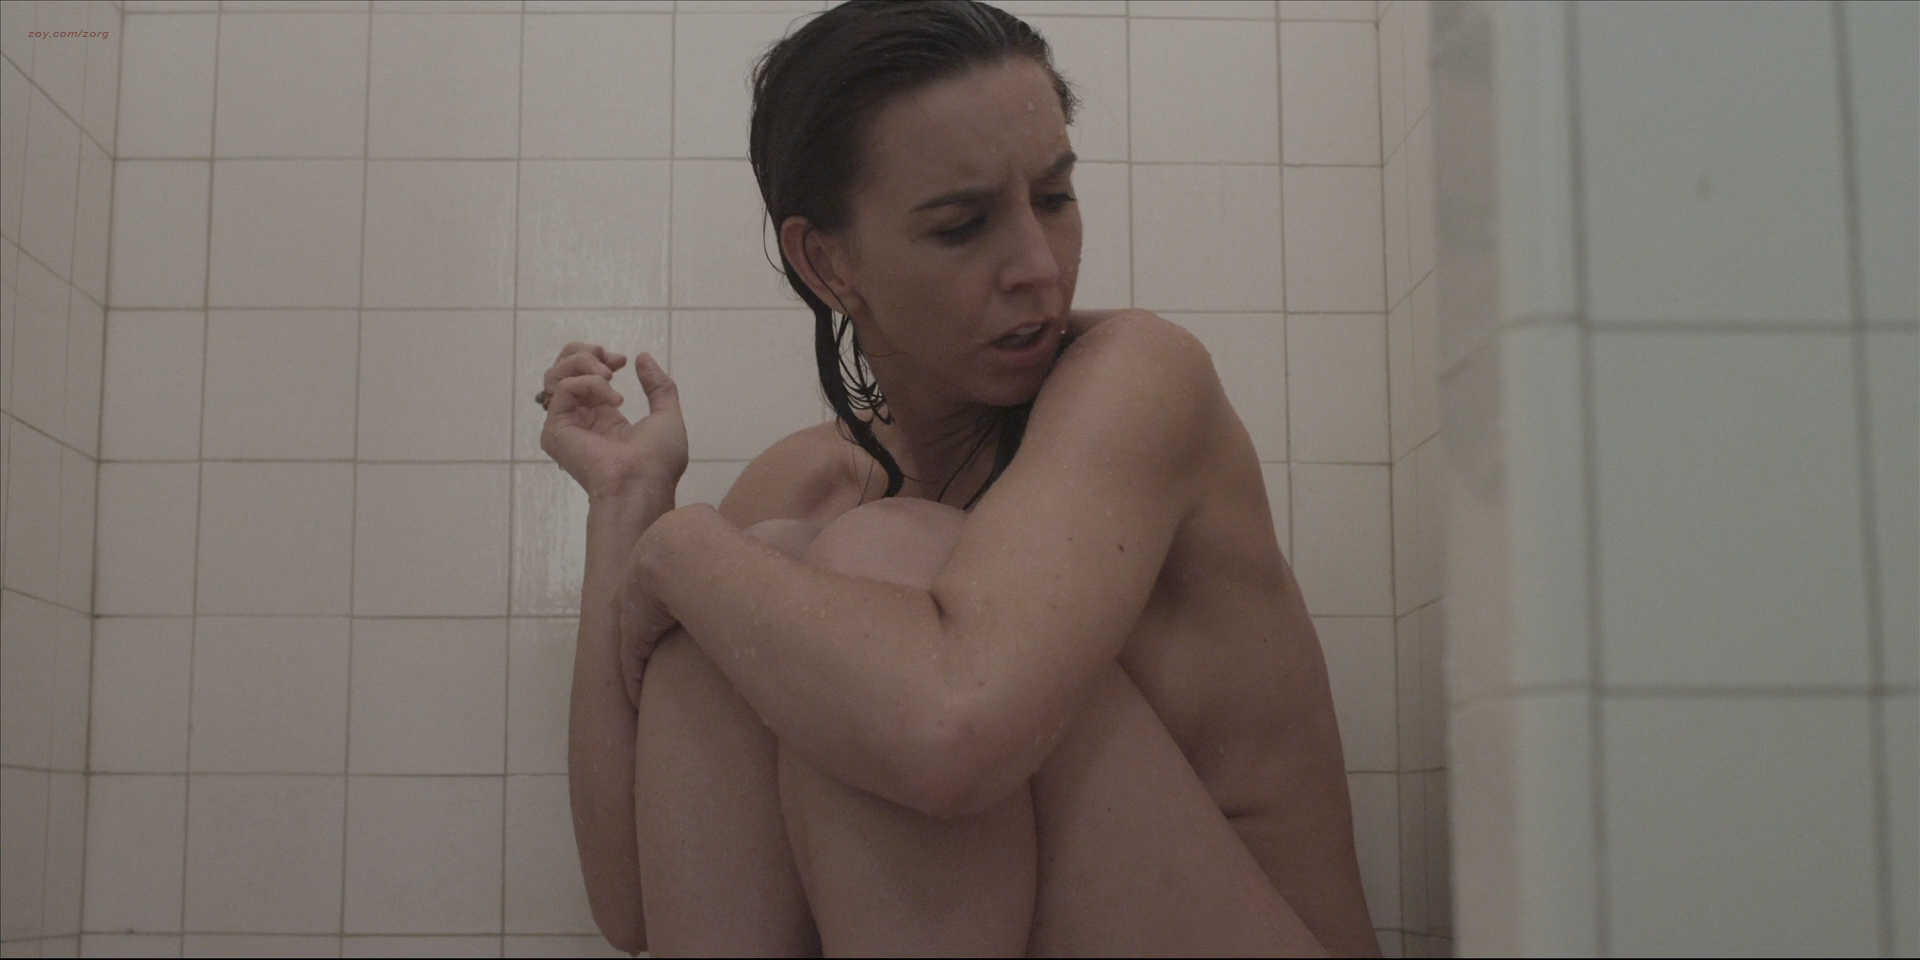 Victoria Johnstone nude butt boobs and Meredith Majors nude but covered – Lake Eerie (2016) HD 1080p (6)